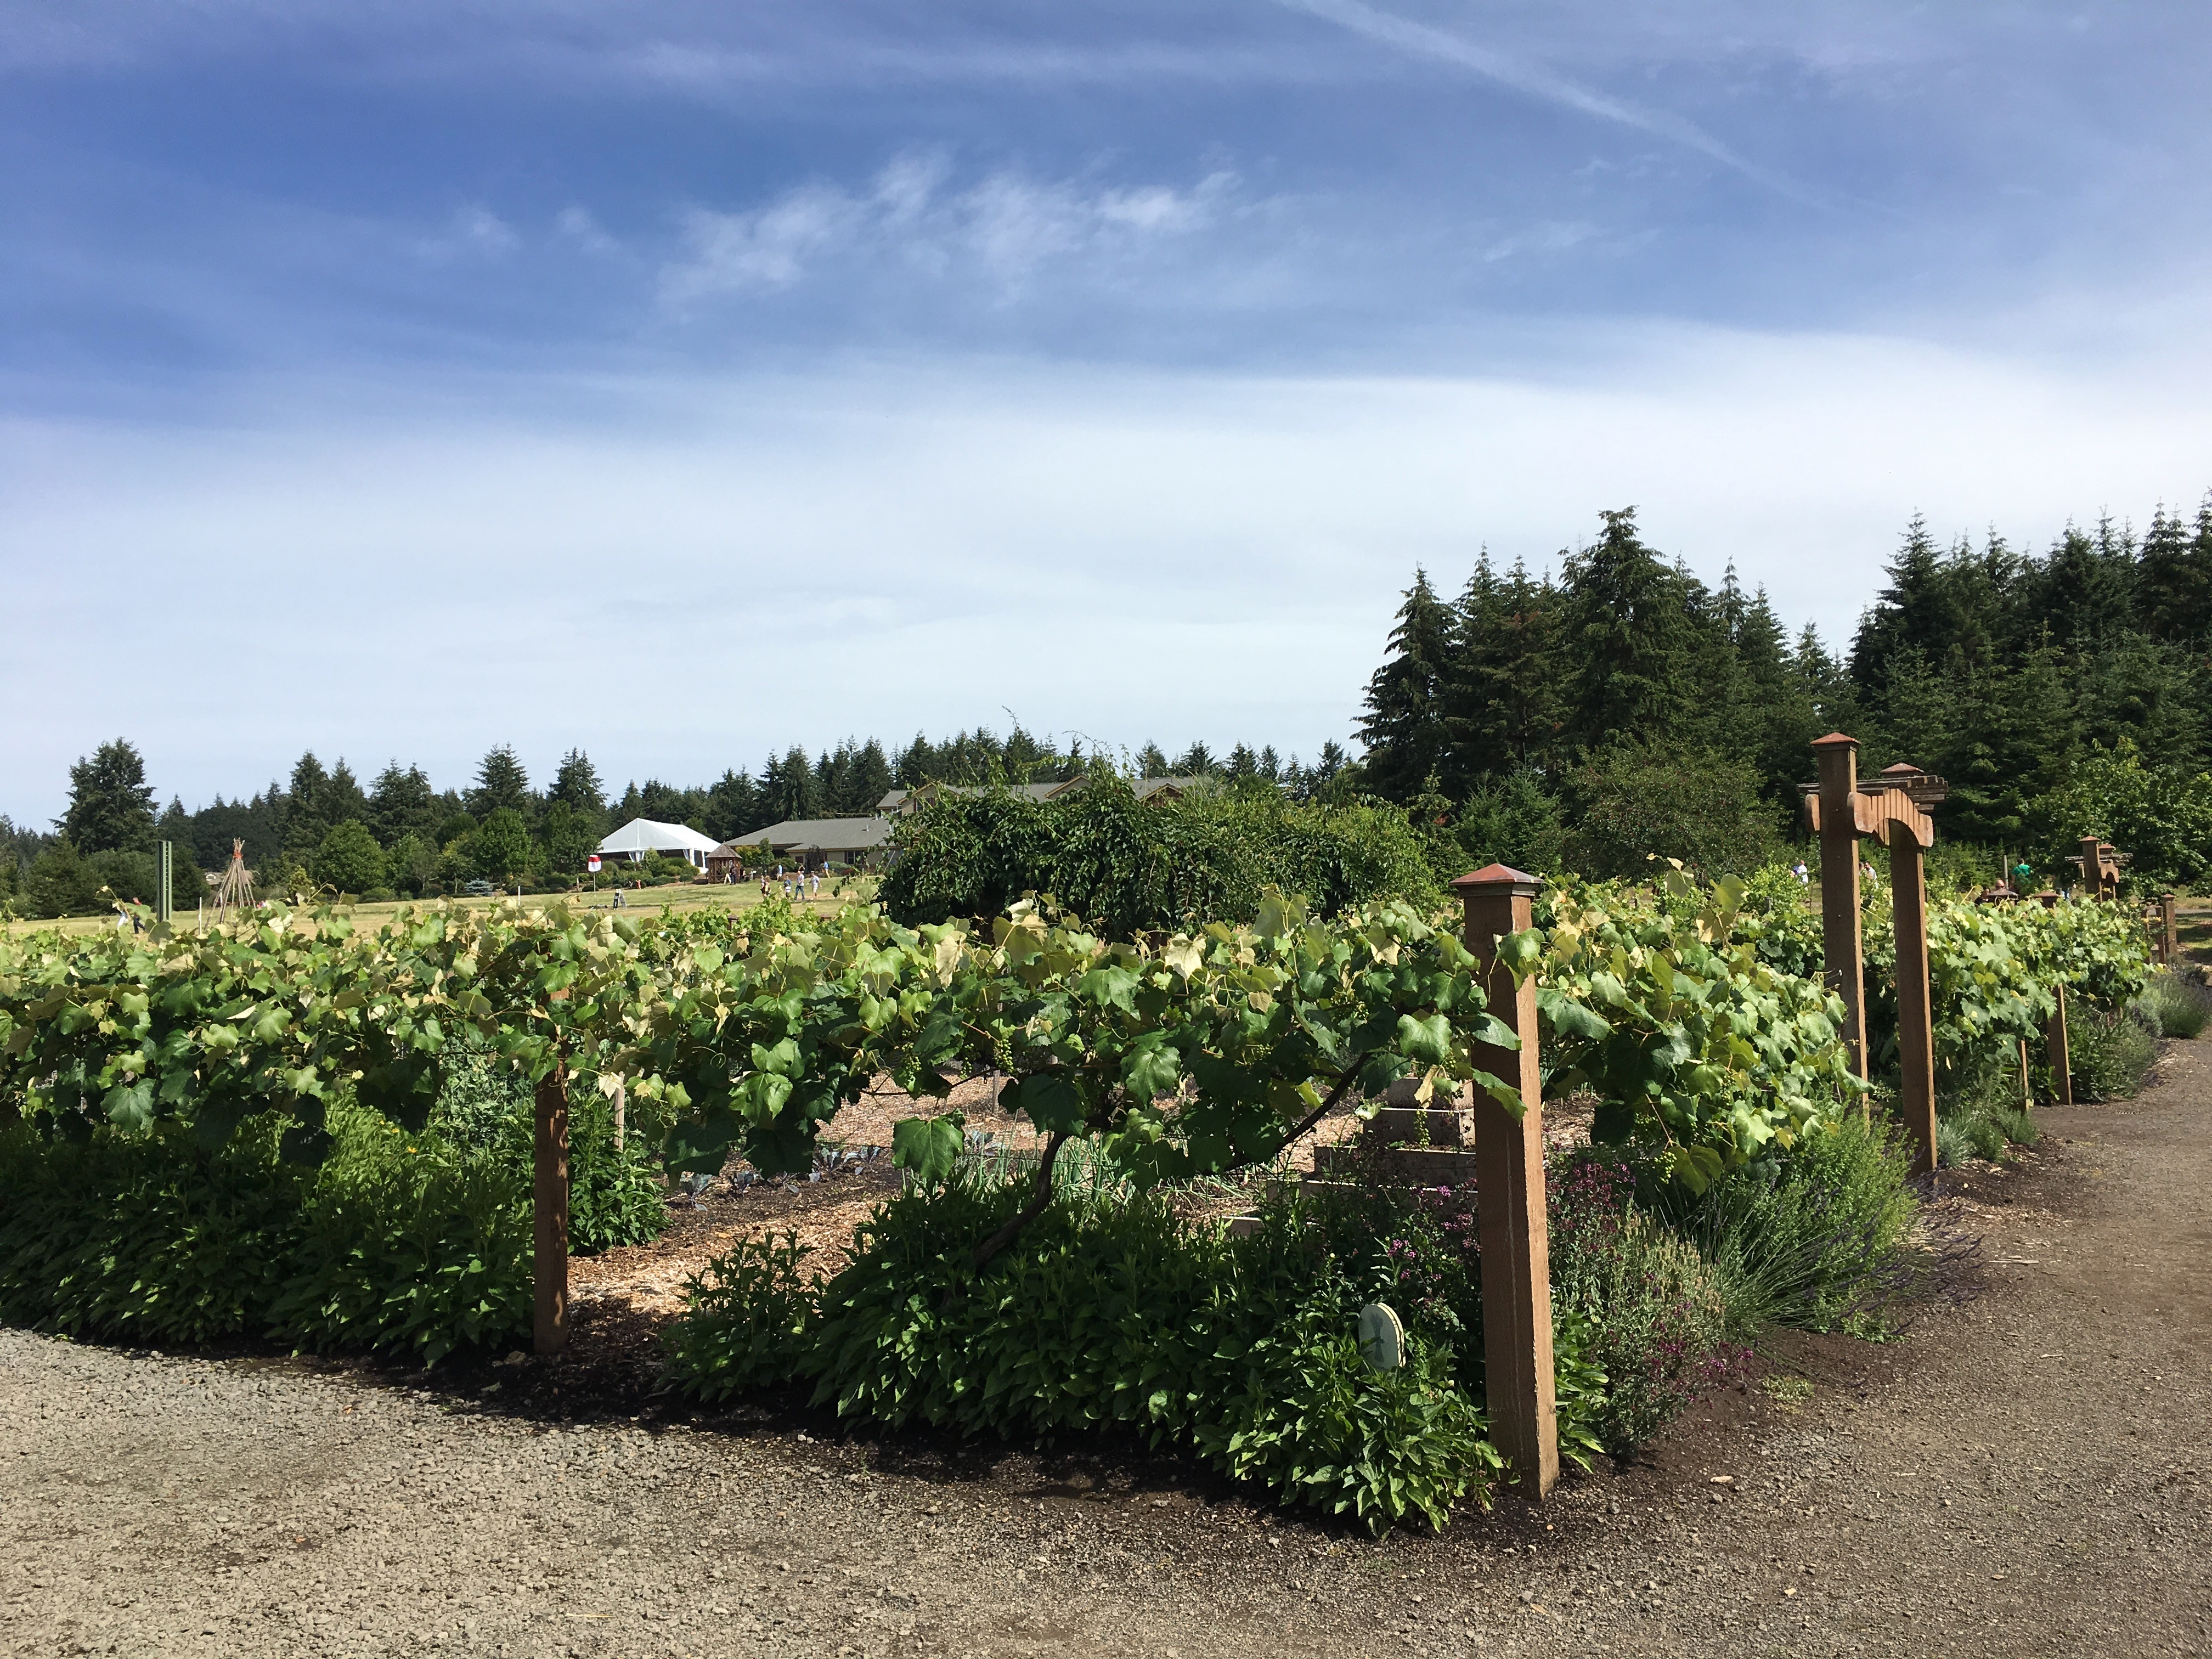 13th Annual Oregon Garden Brewfest Adds New Events For 2017